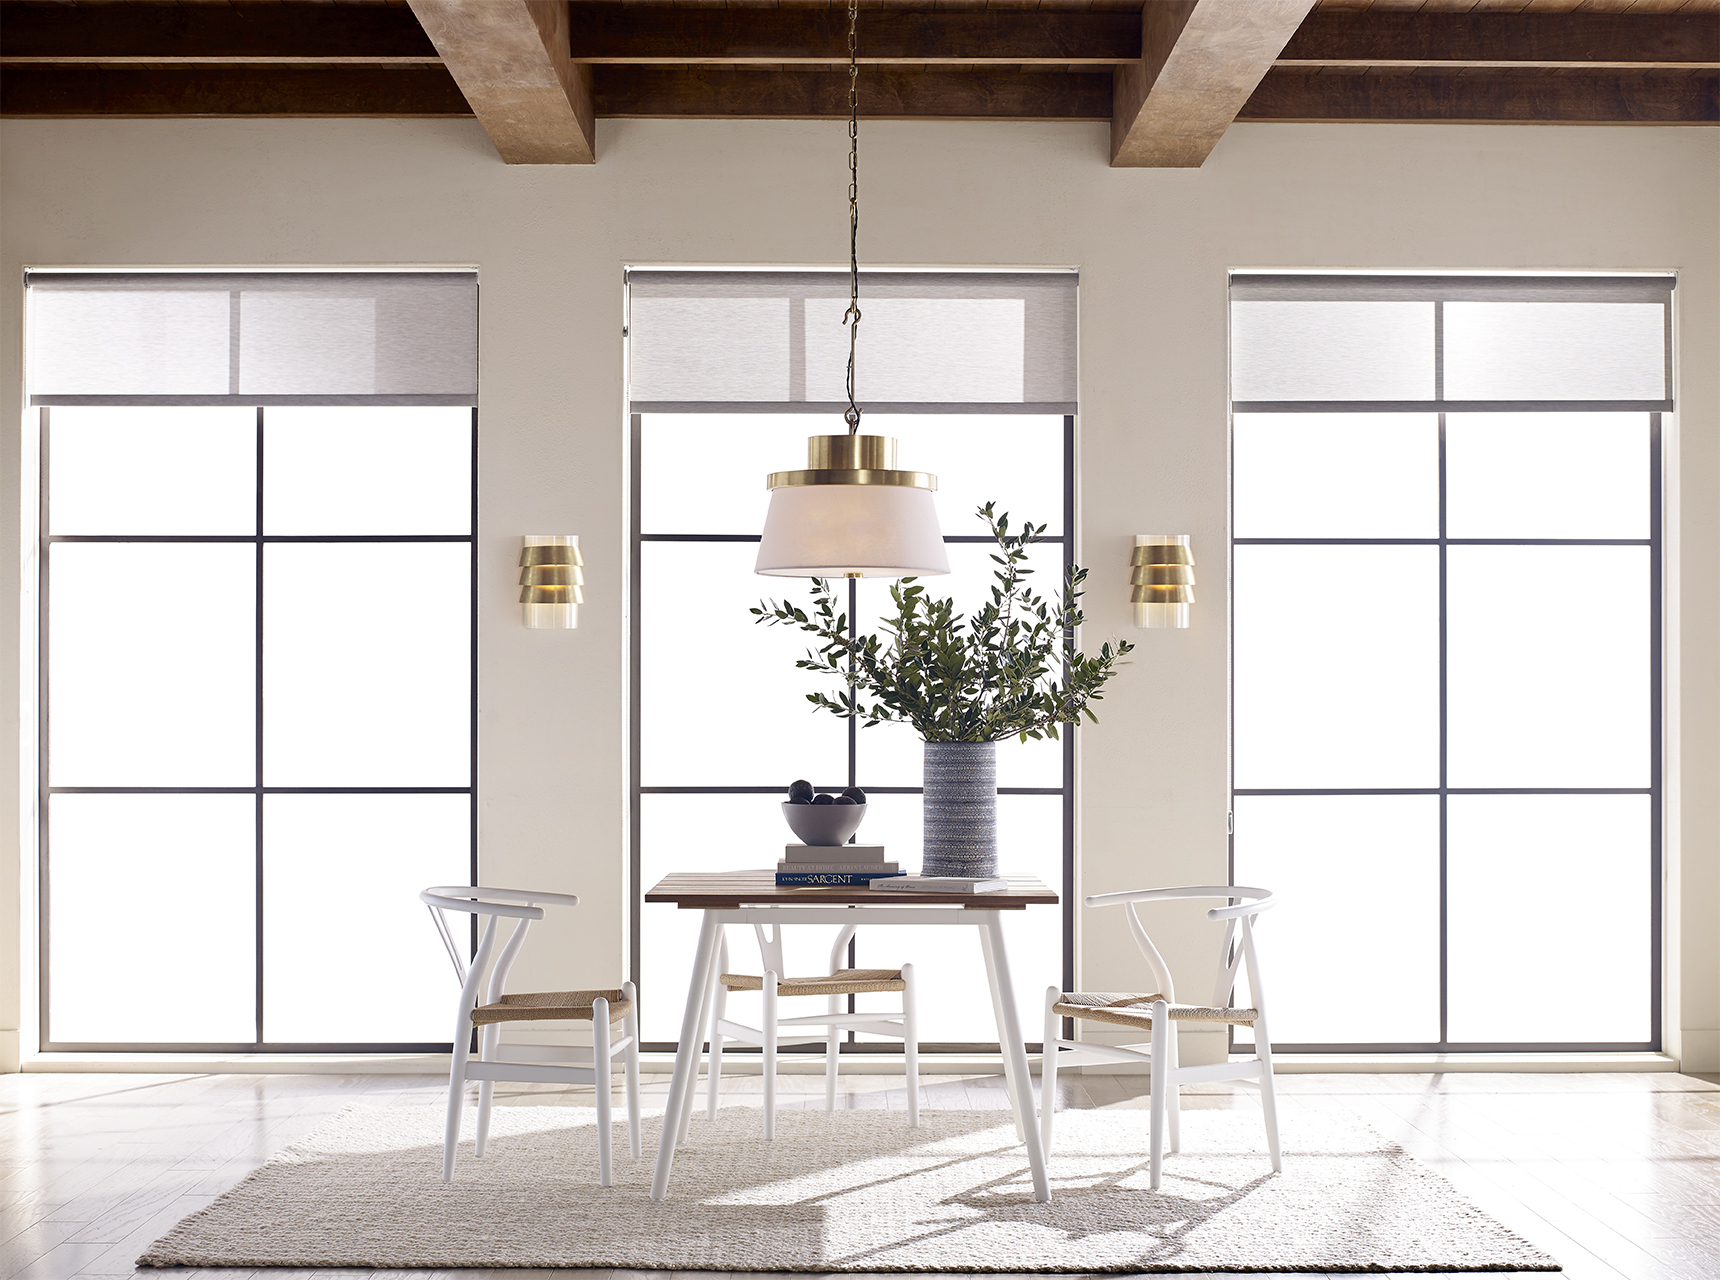 home dining space window lighting